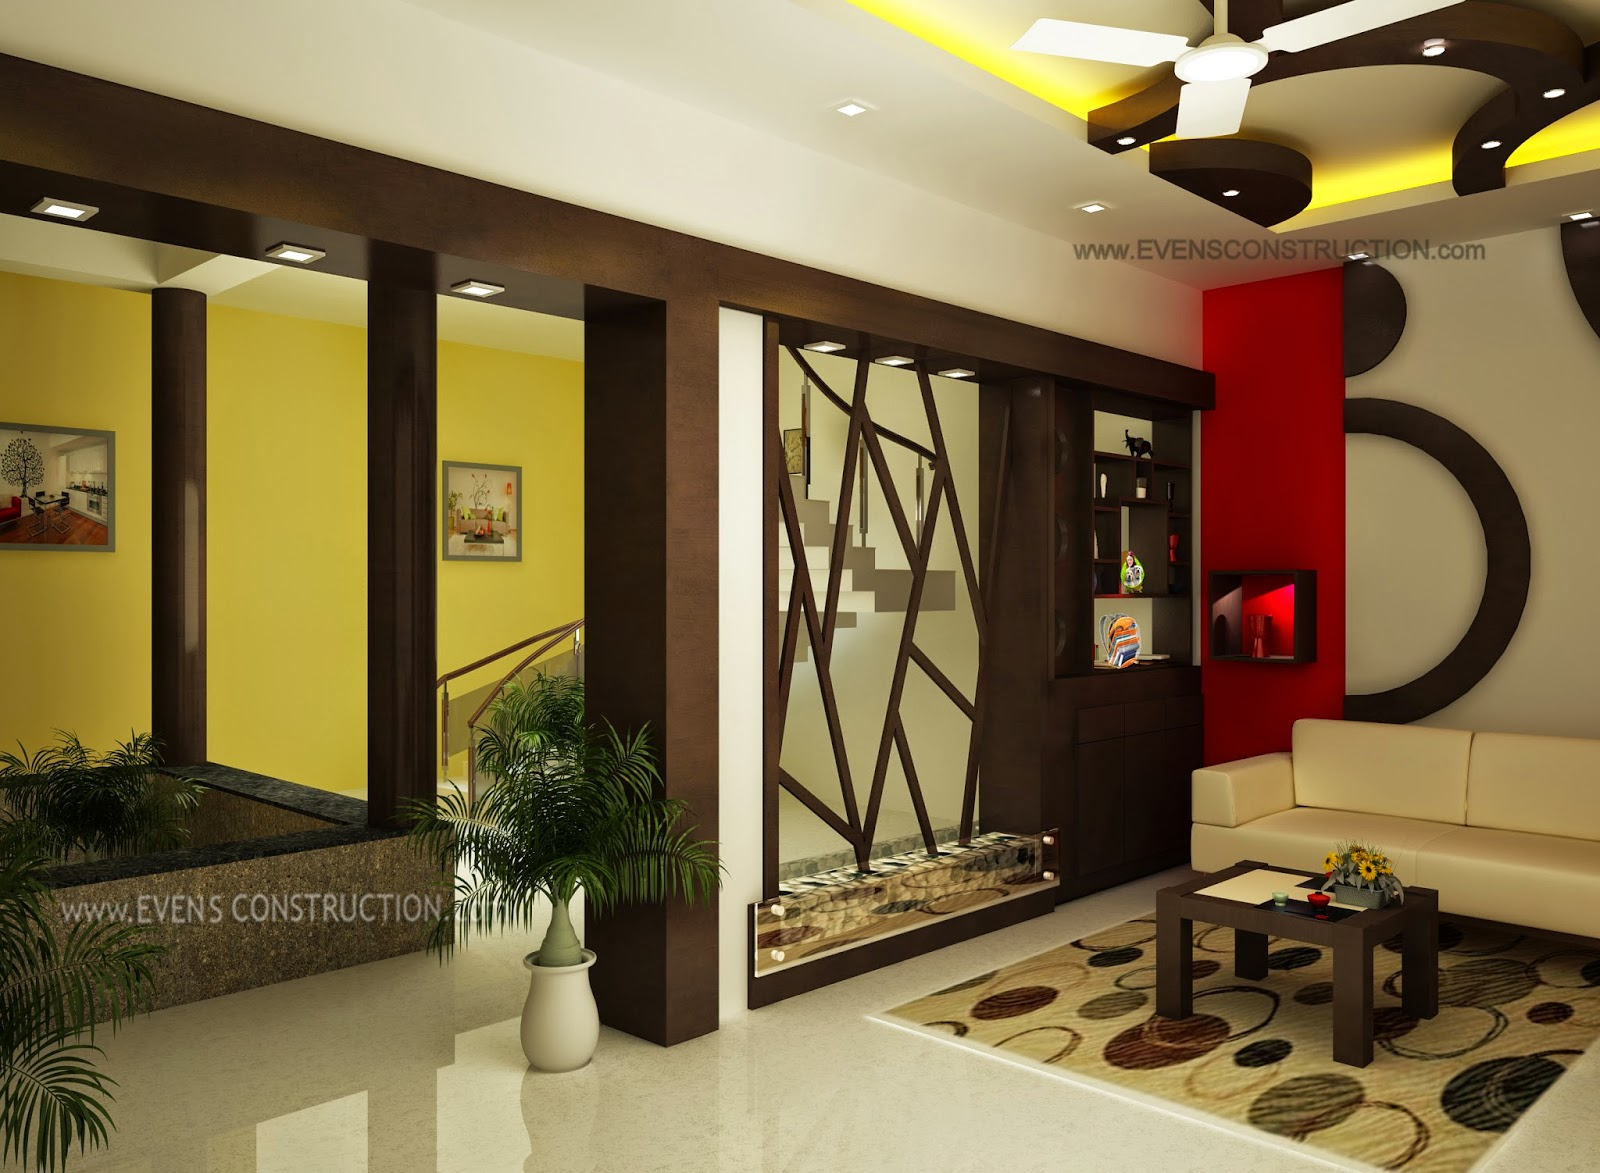 Evens construction pvt ltd january 2015 for Dining room designs kerala